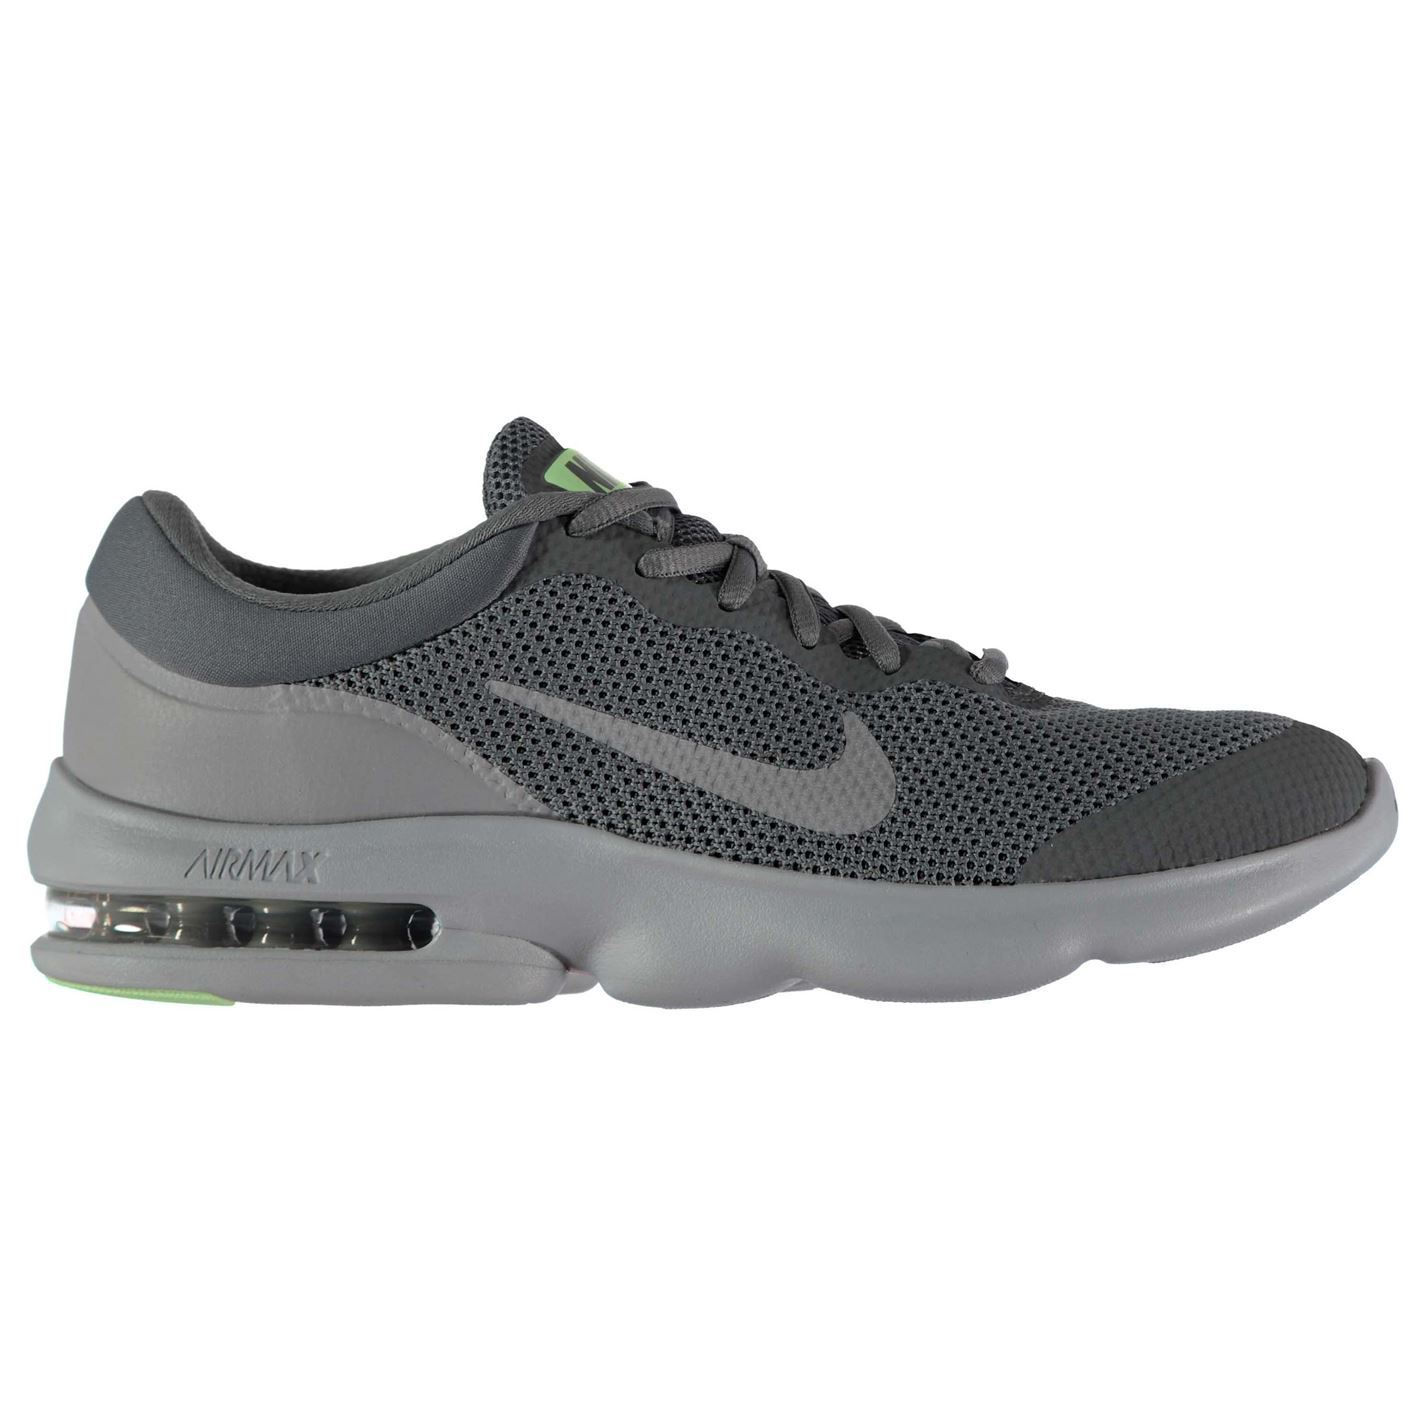 buy popular f092c 6f4fc ... coupon code for nike air max advantage running shoes mens grey jogging  trainers sneakers 60c9f 303e4